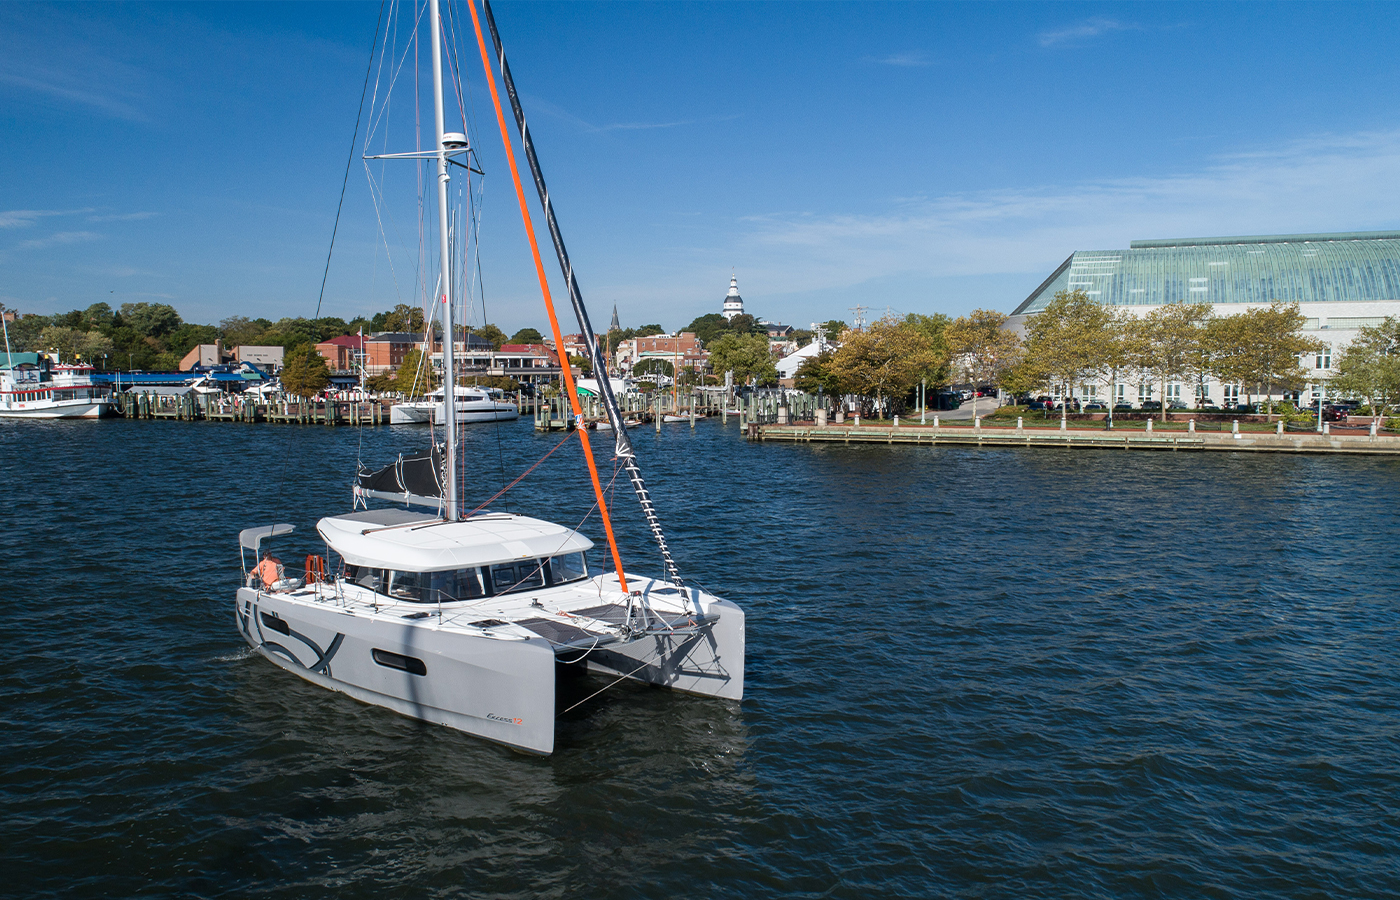 Tour The New Excess 12 Catamaran On Shelter Island